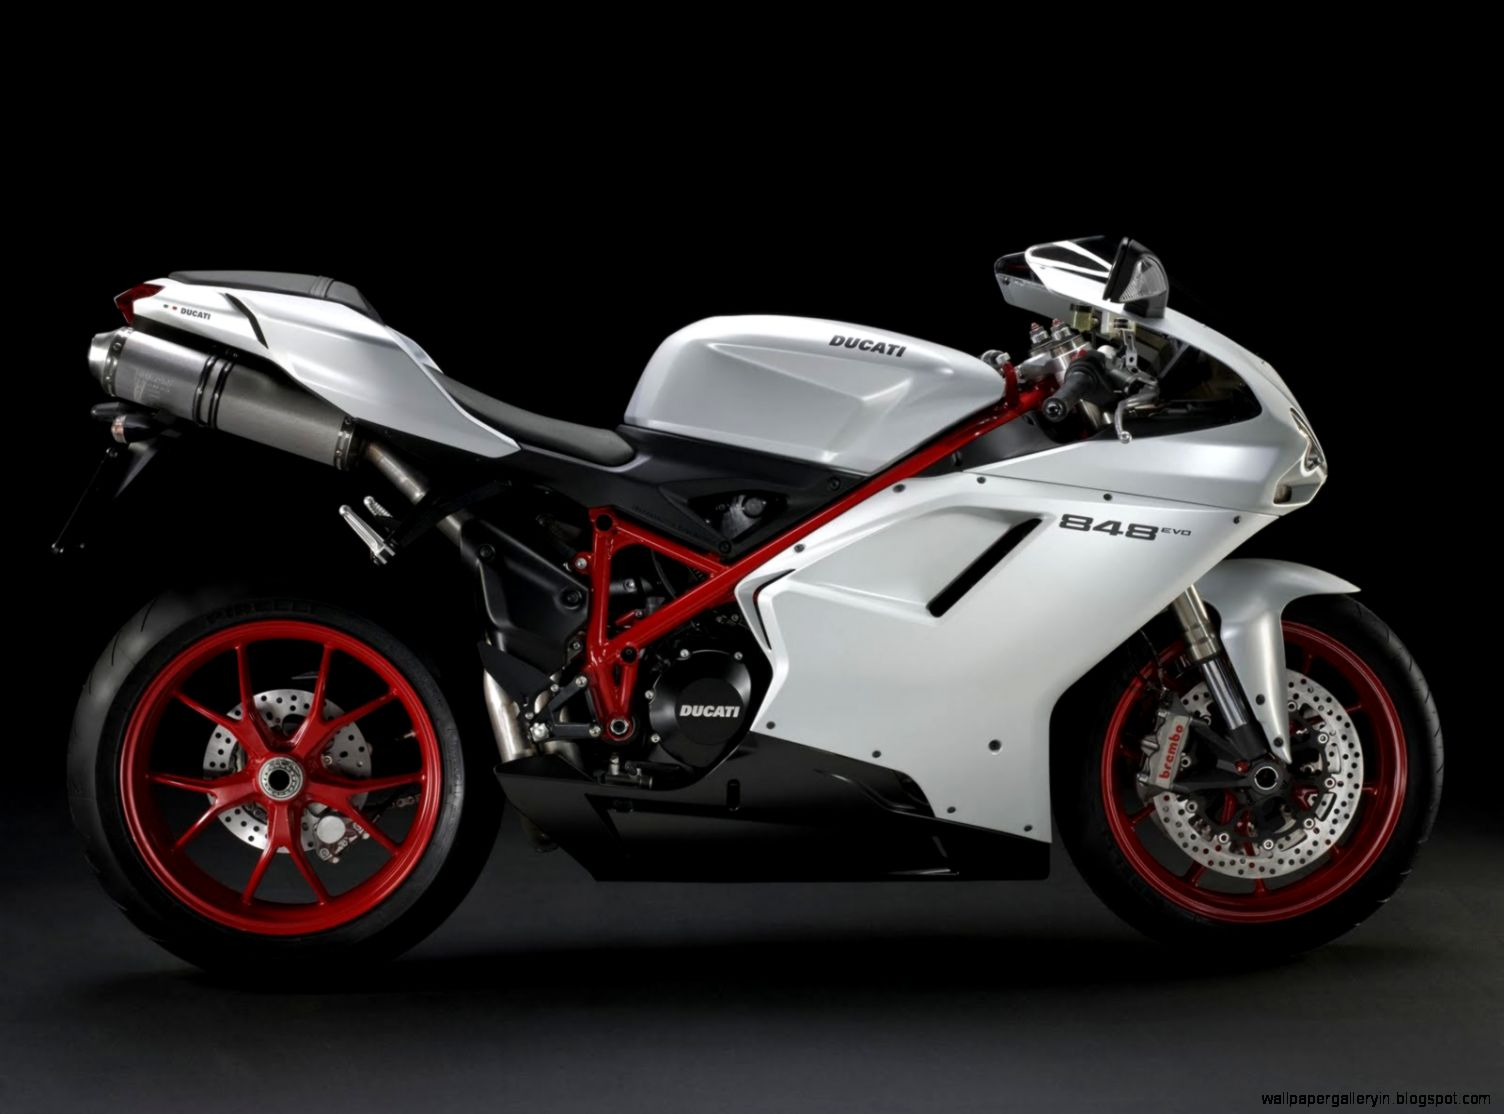 Ducati Superbike 848 Evo Photo Image Picture And Wallpapers Hd